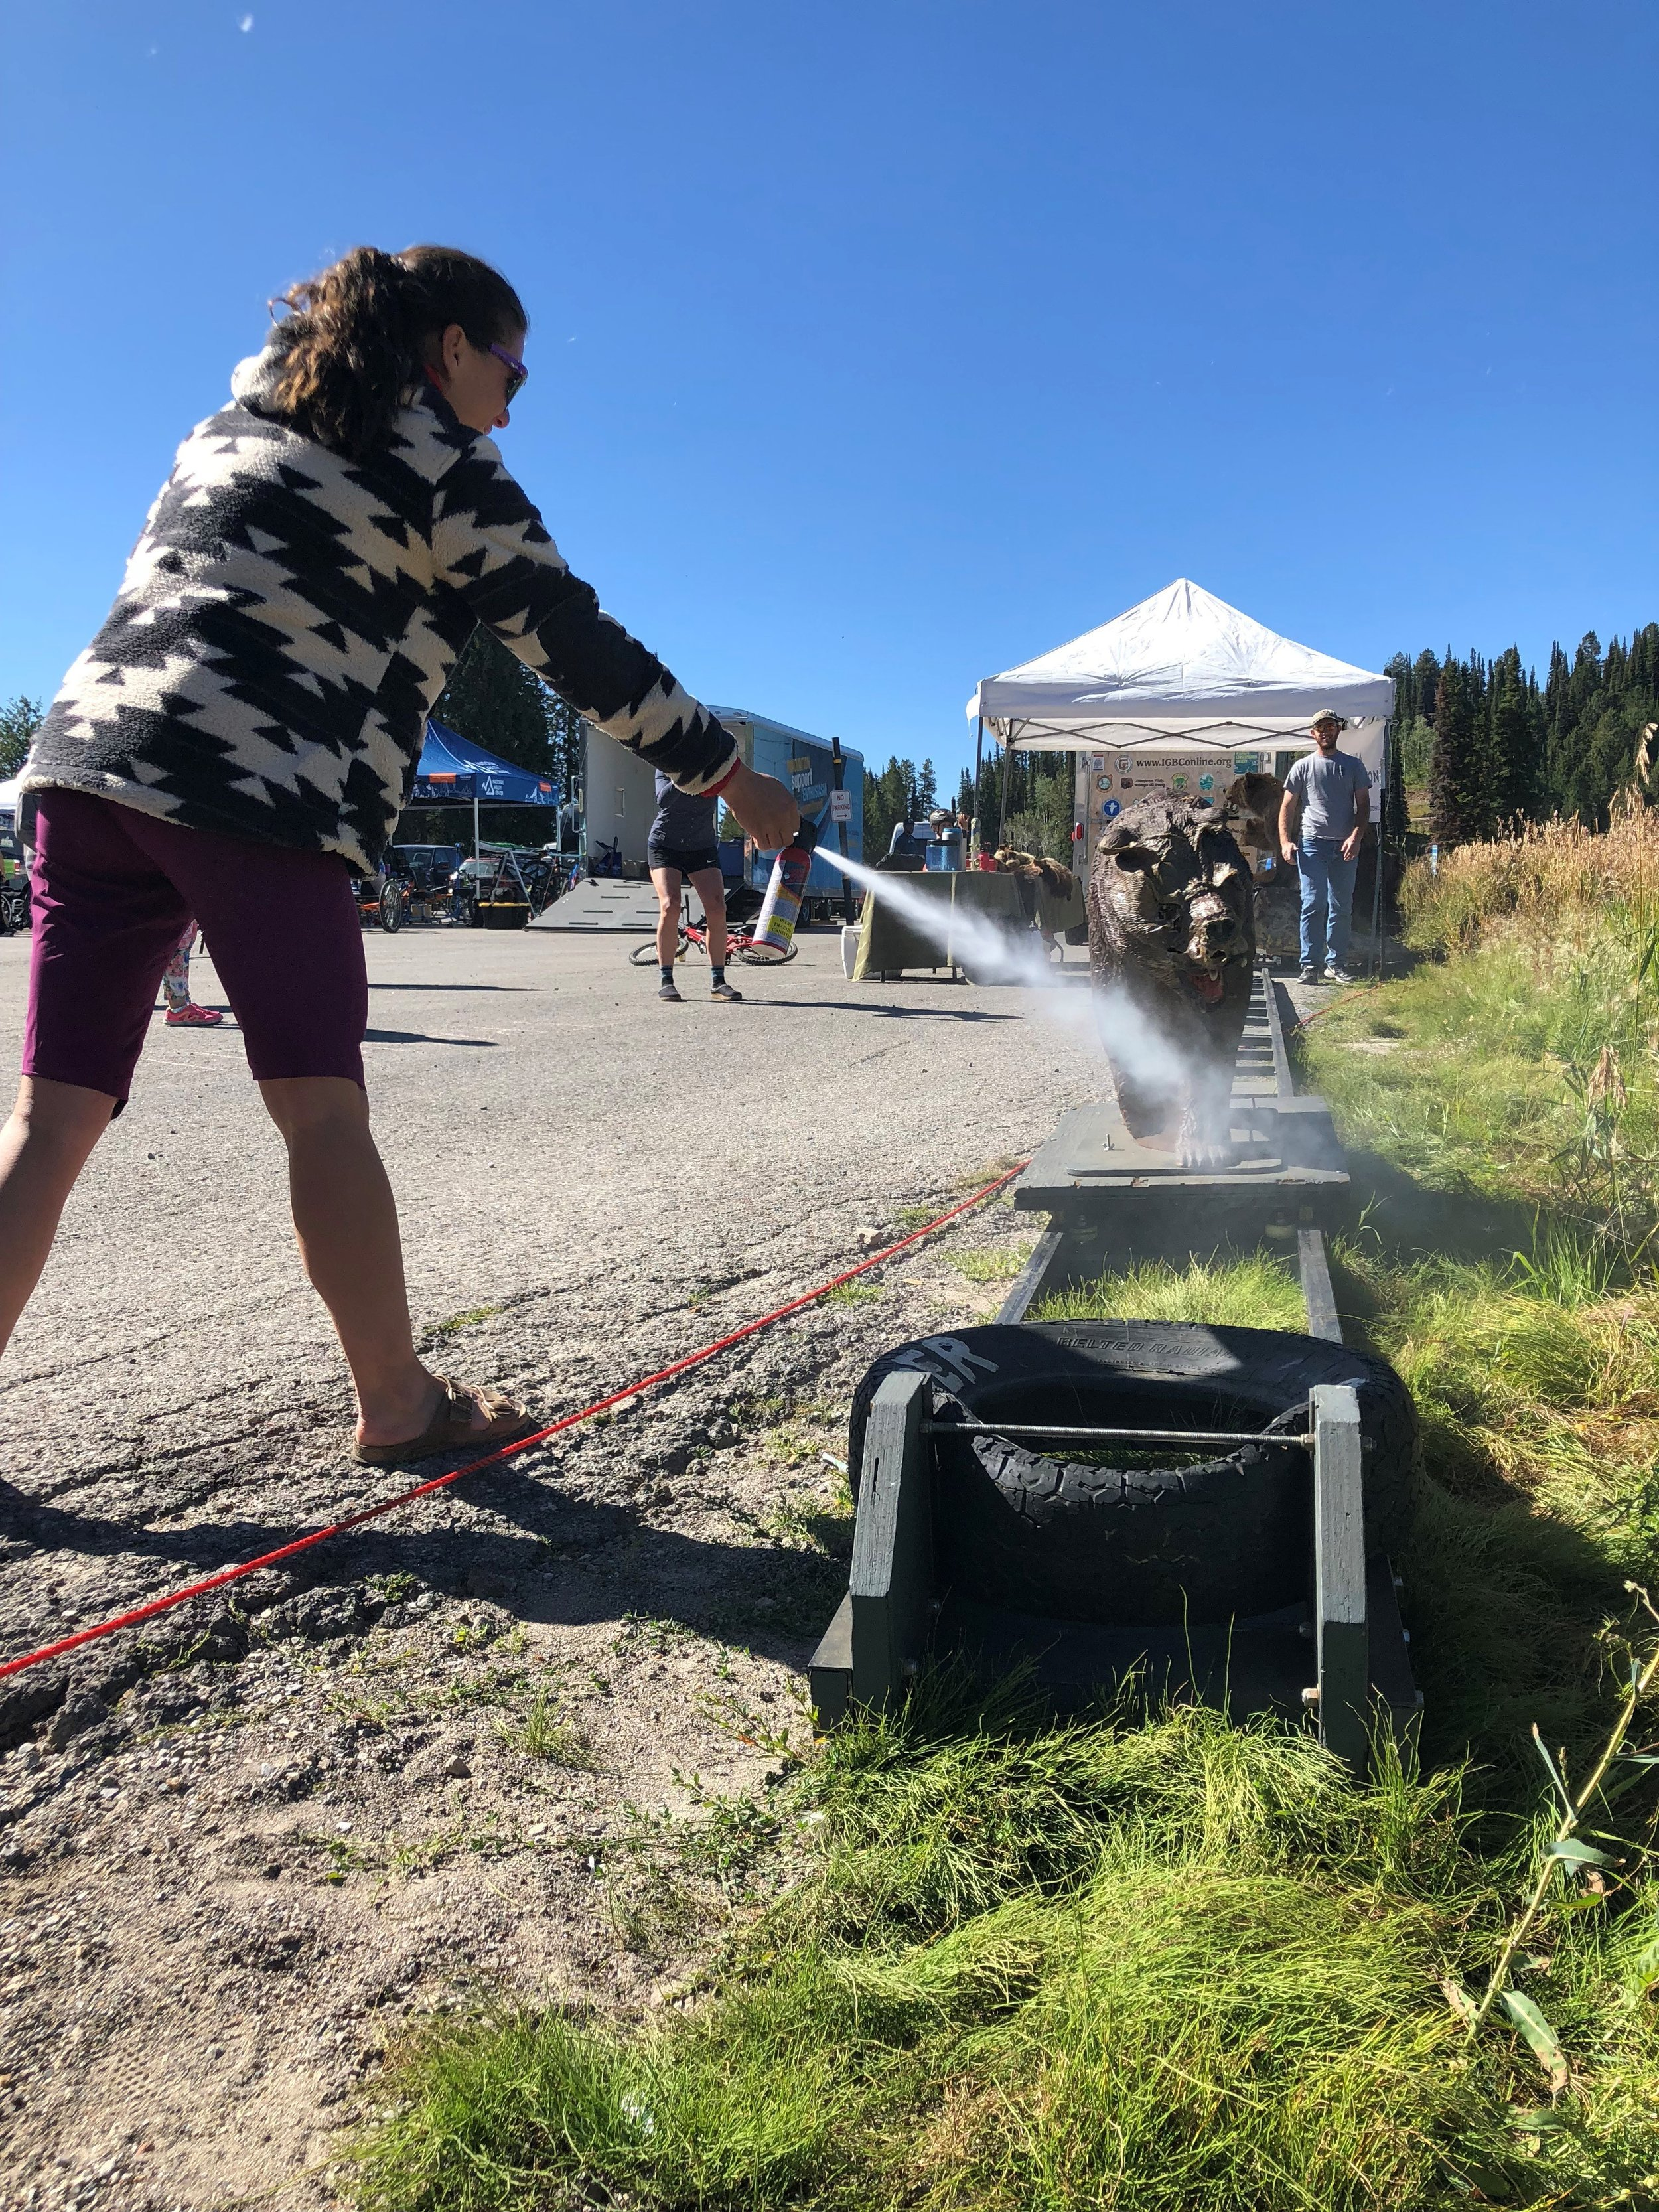 A participant uses inert bear spray to test her reflexes with the Charger, the mechanical charging bear we brought to a mountain biking festival in Teton Valley, Idaho. (Photo GYC.)